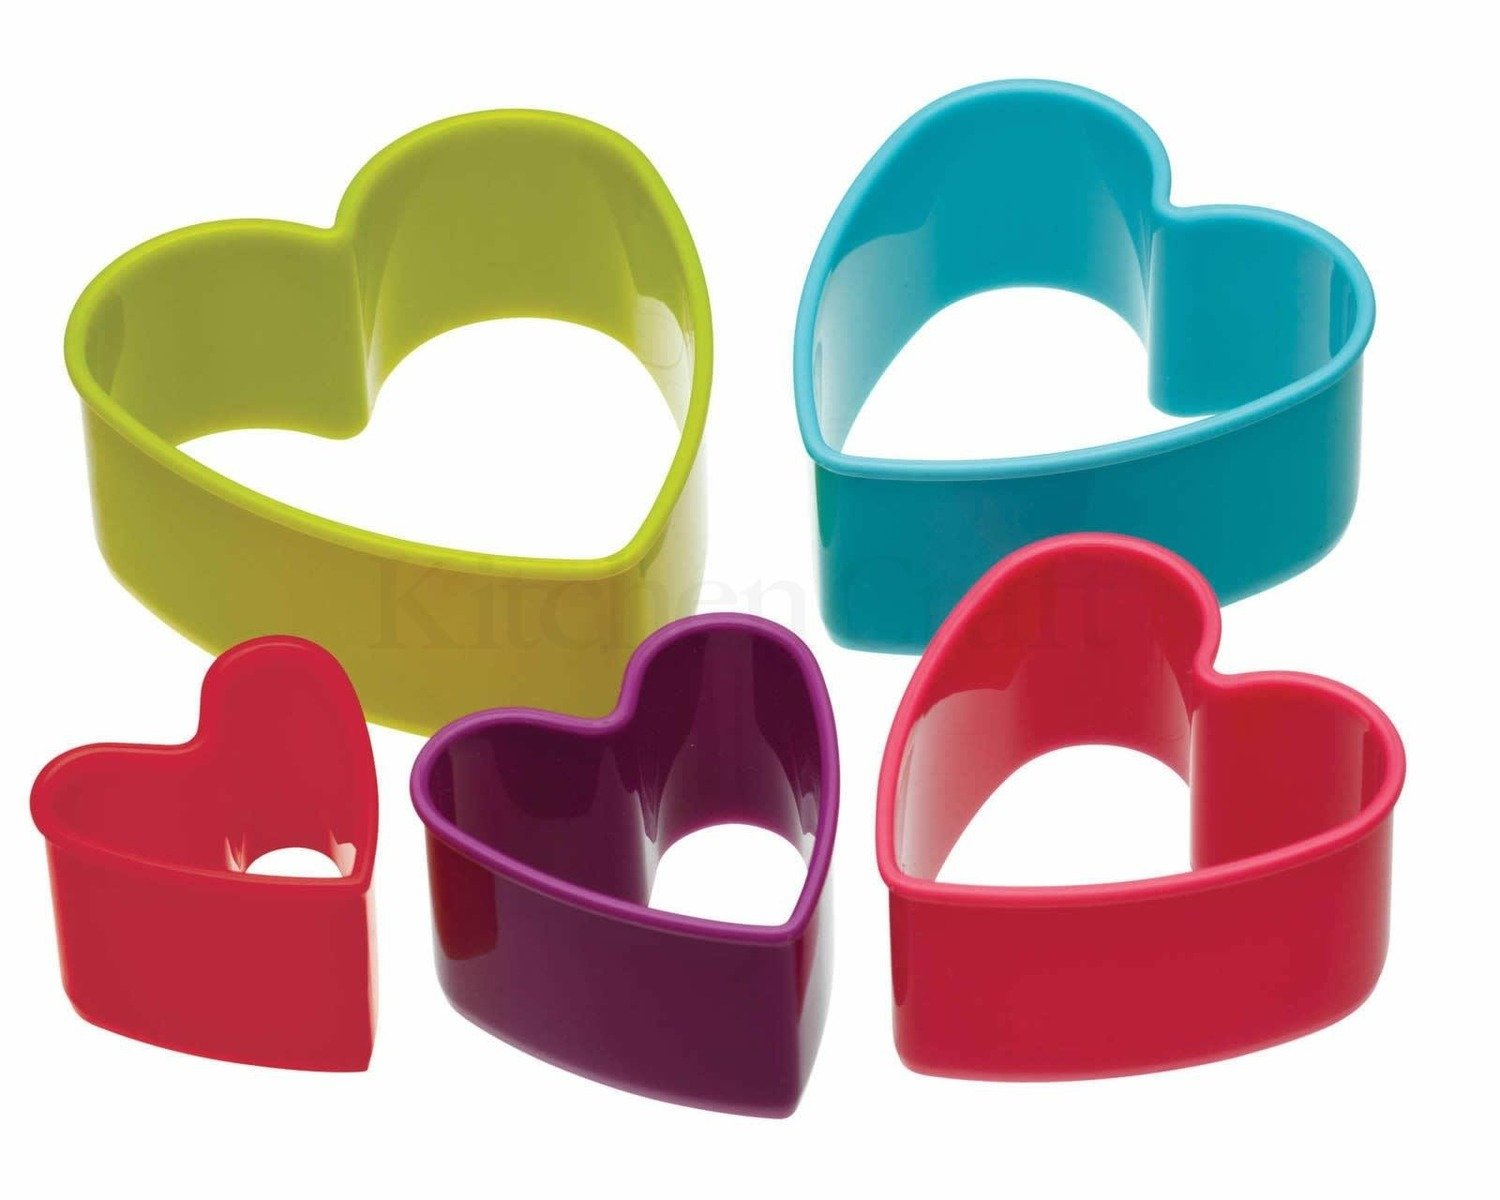 Colourworks - Set of 5 Heart Shaped Cookie Cutters - Πλαστικά Κουπάτ σχήμα Καρδιά - σετ 5 τεμαχίων